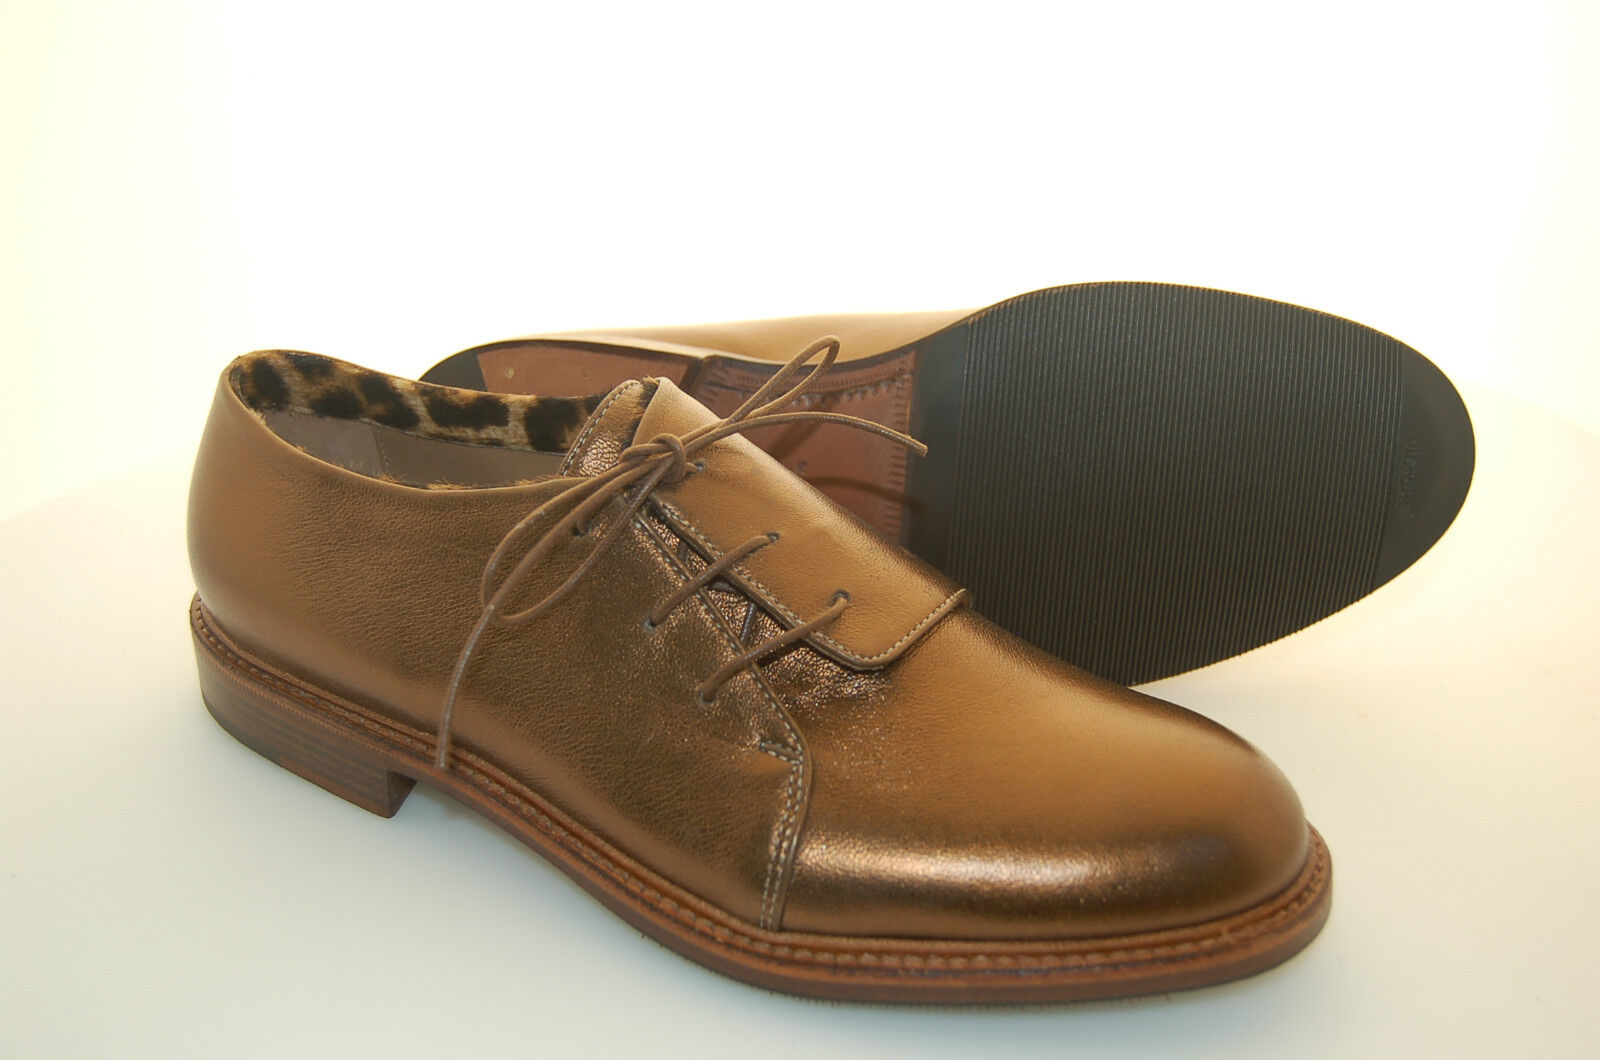 WOMAN - - - damen - DERBY - CALF BRONZE - VITELLO BRONZO - LEATHER SOLE+½RUBBER e2704d